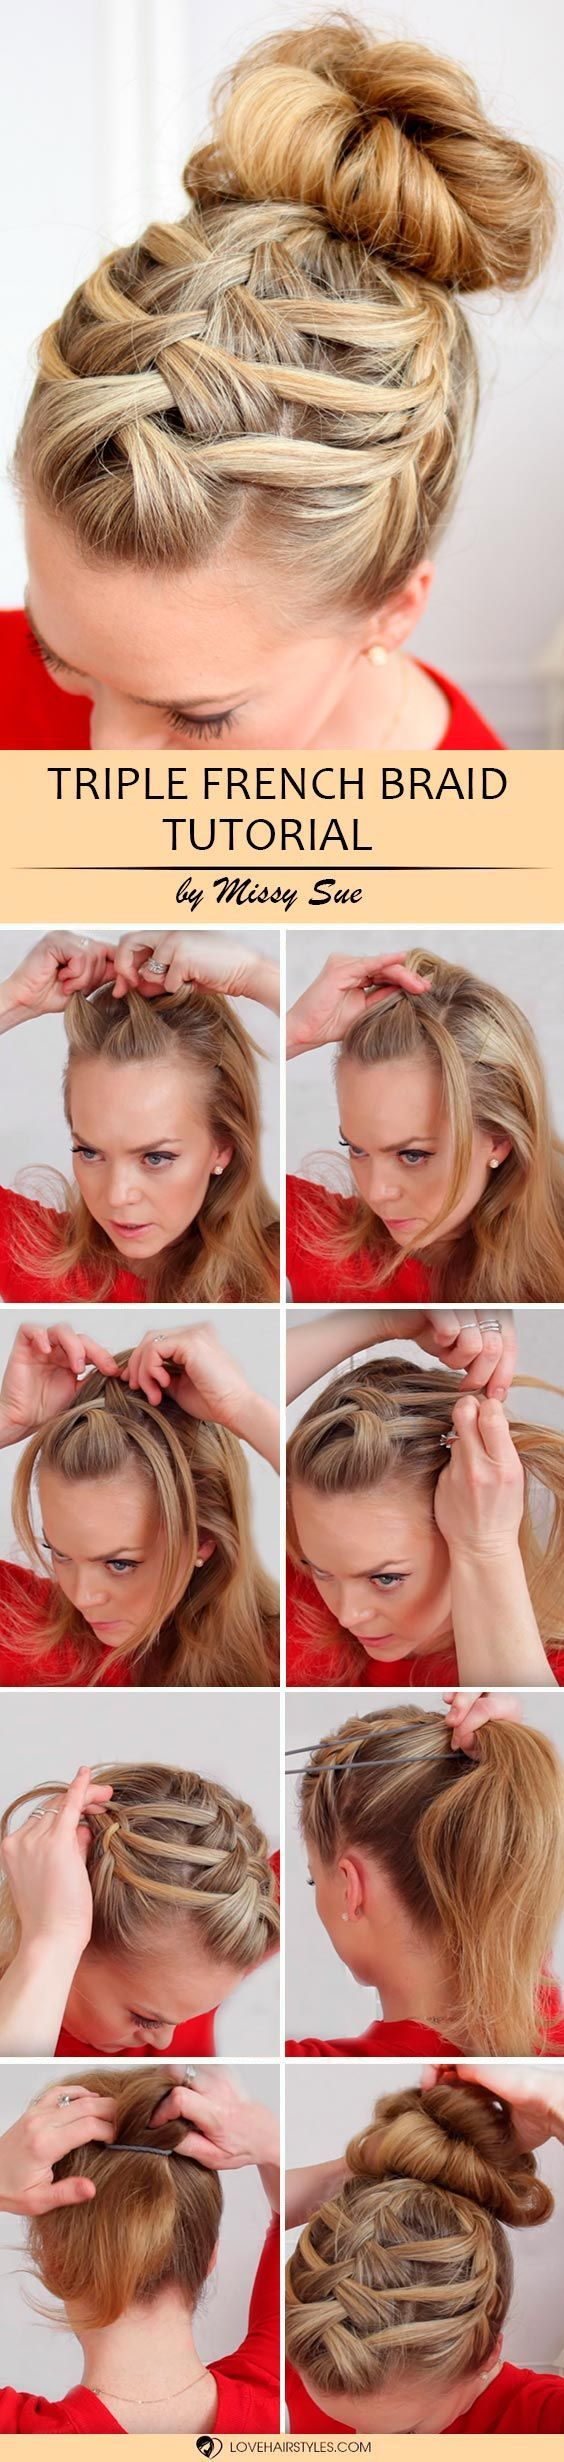 best peinados images on pinterest hairstyle ideas hair makeup